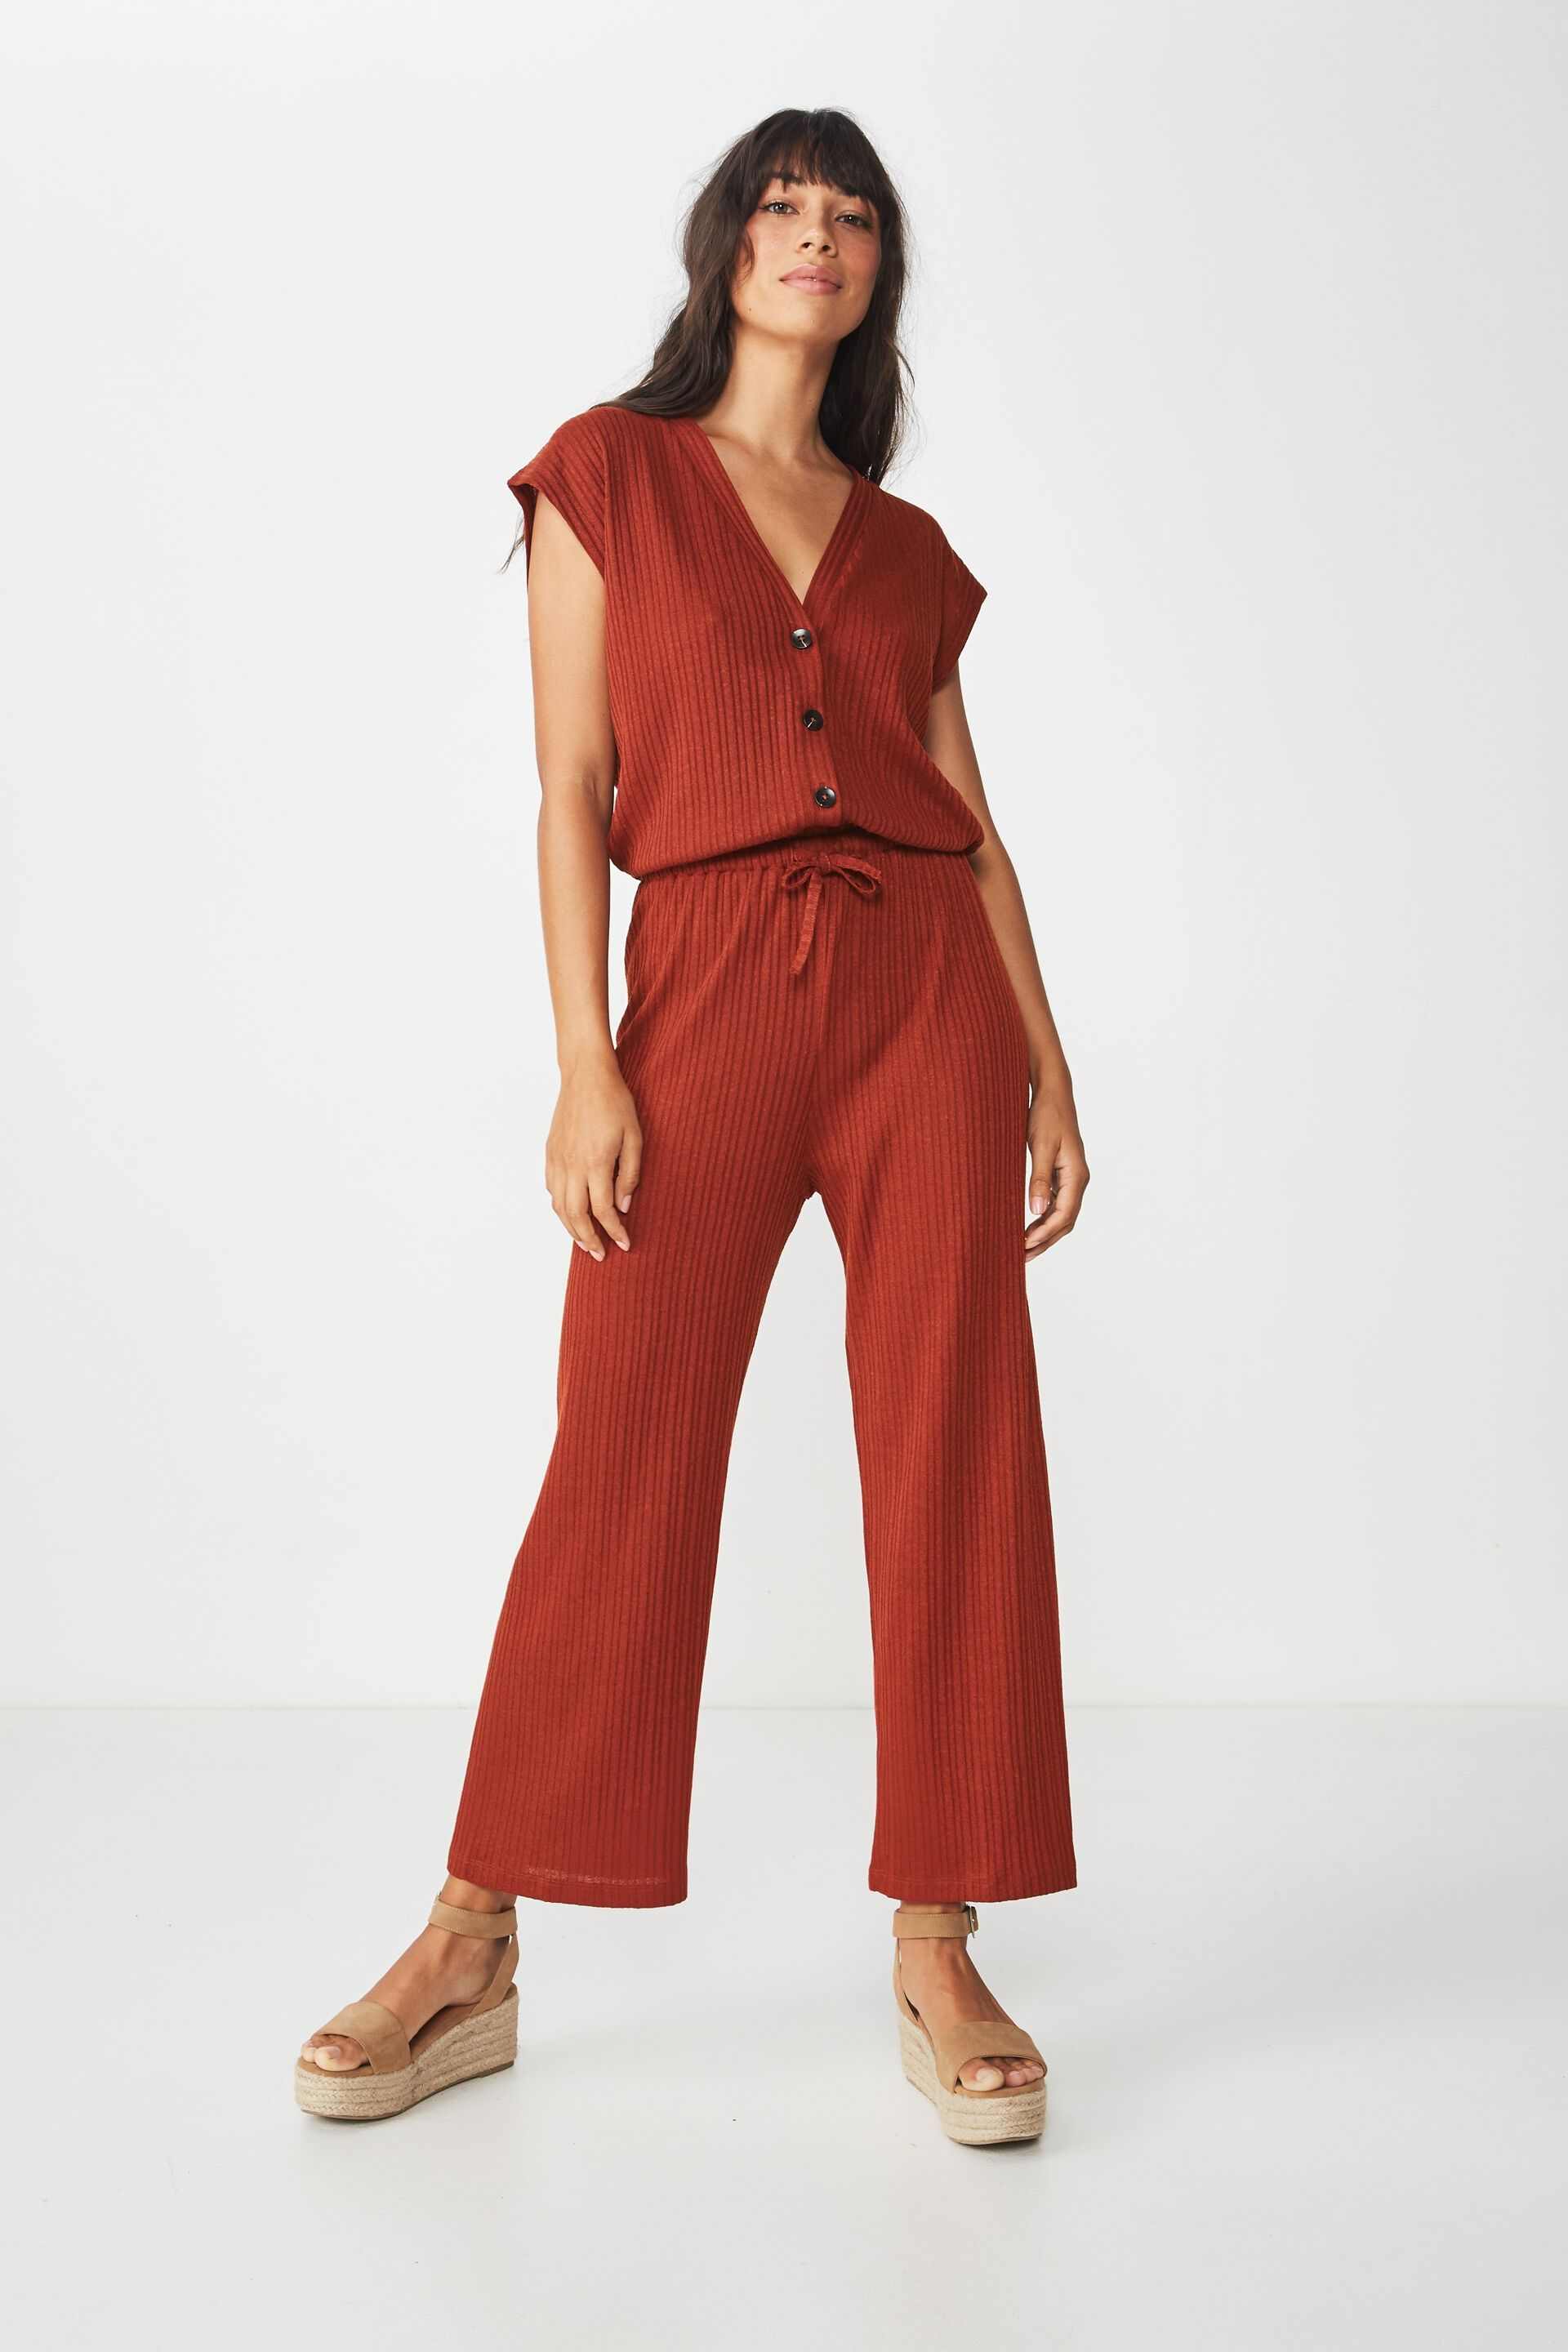 Playsuit Wide Selection; Jumpsuits, Rompers & Playsuits Women's Clothing